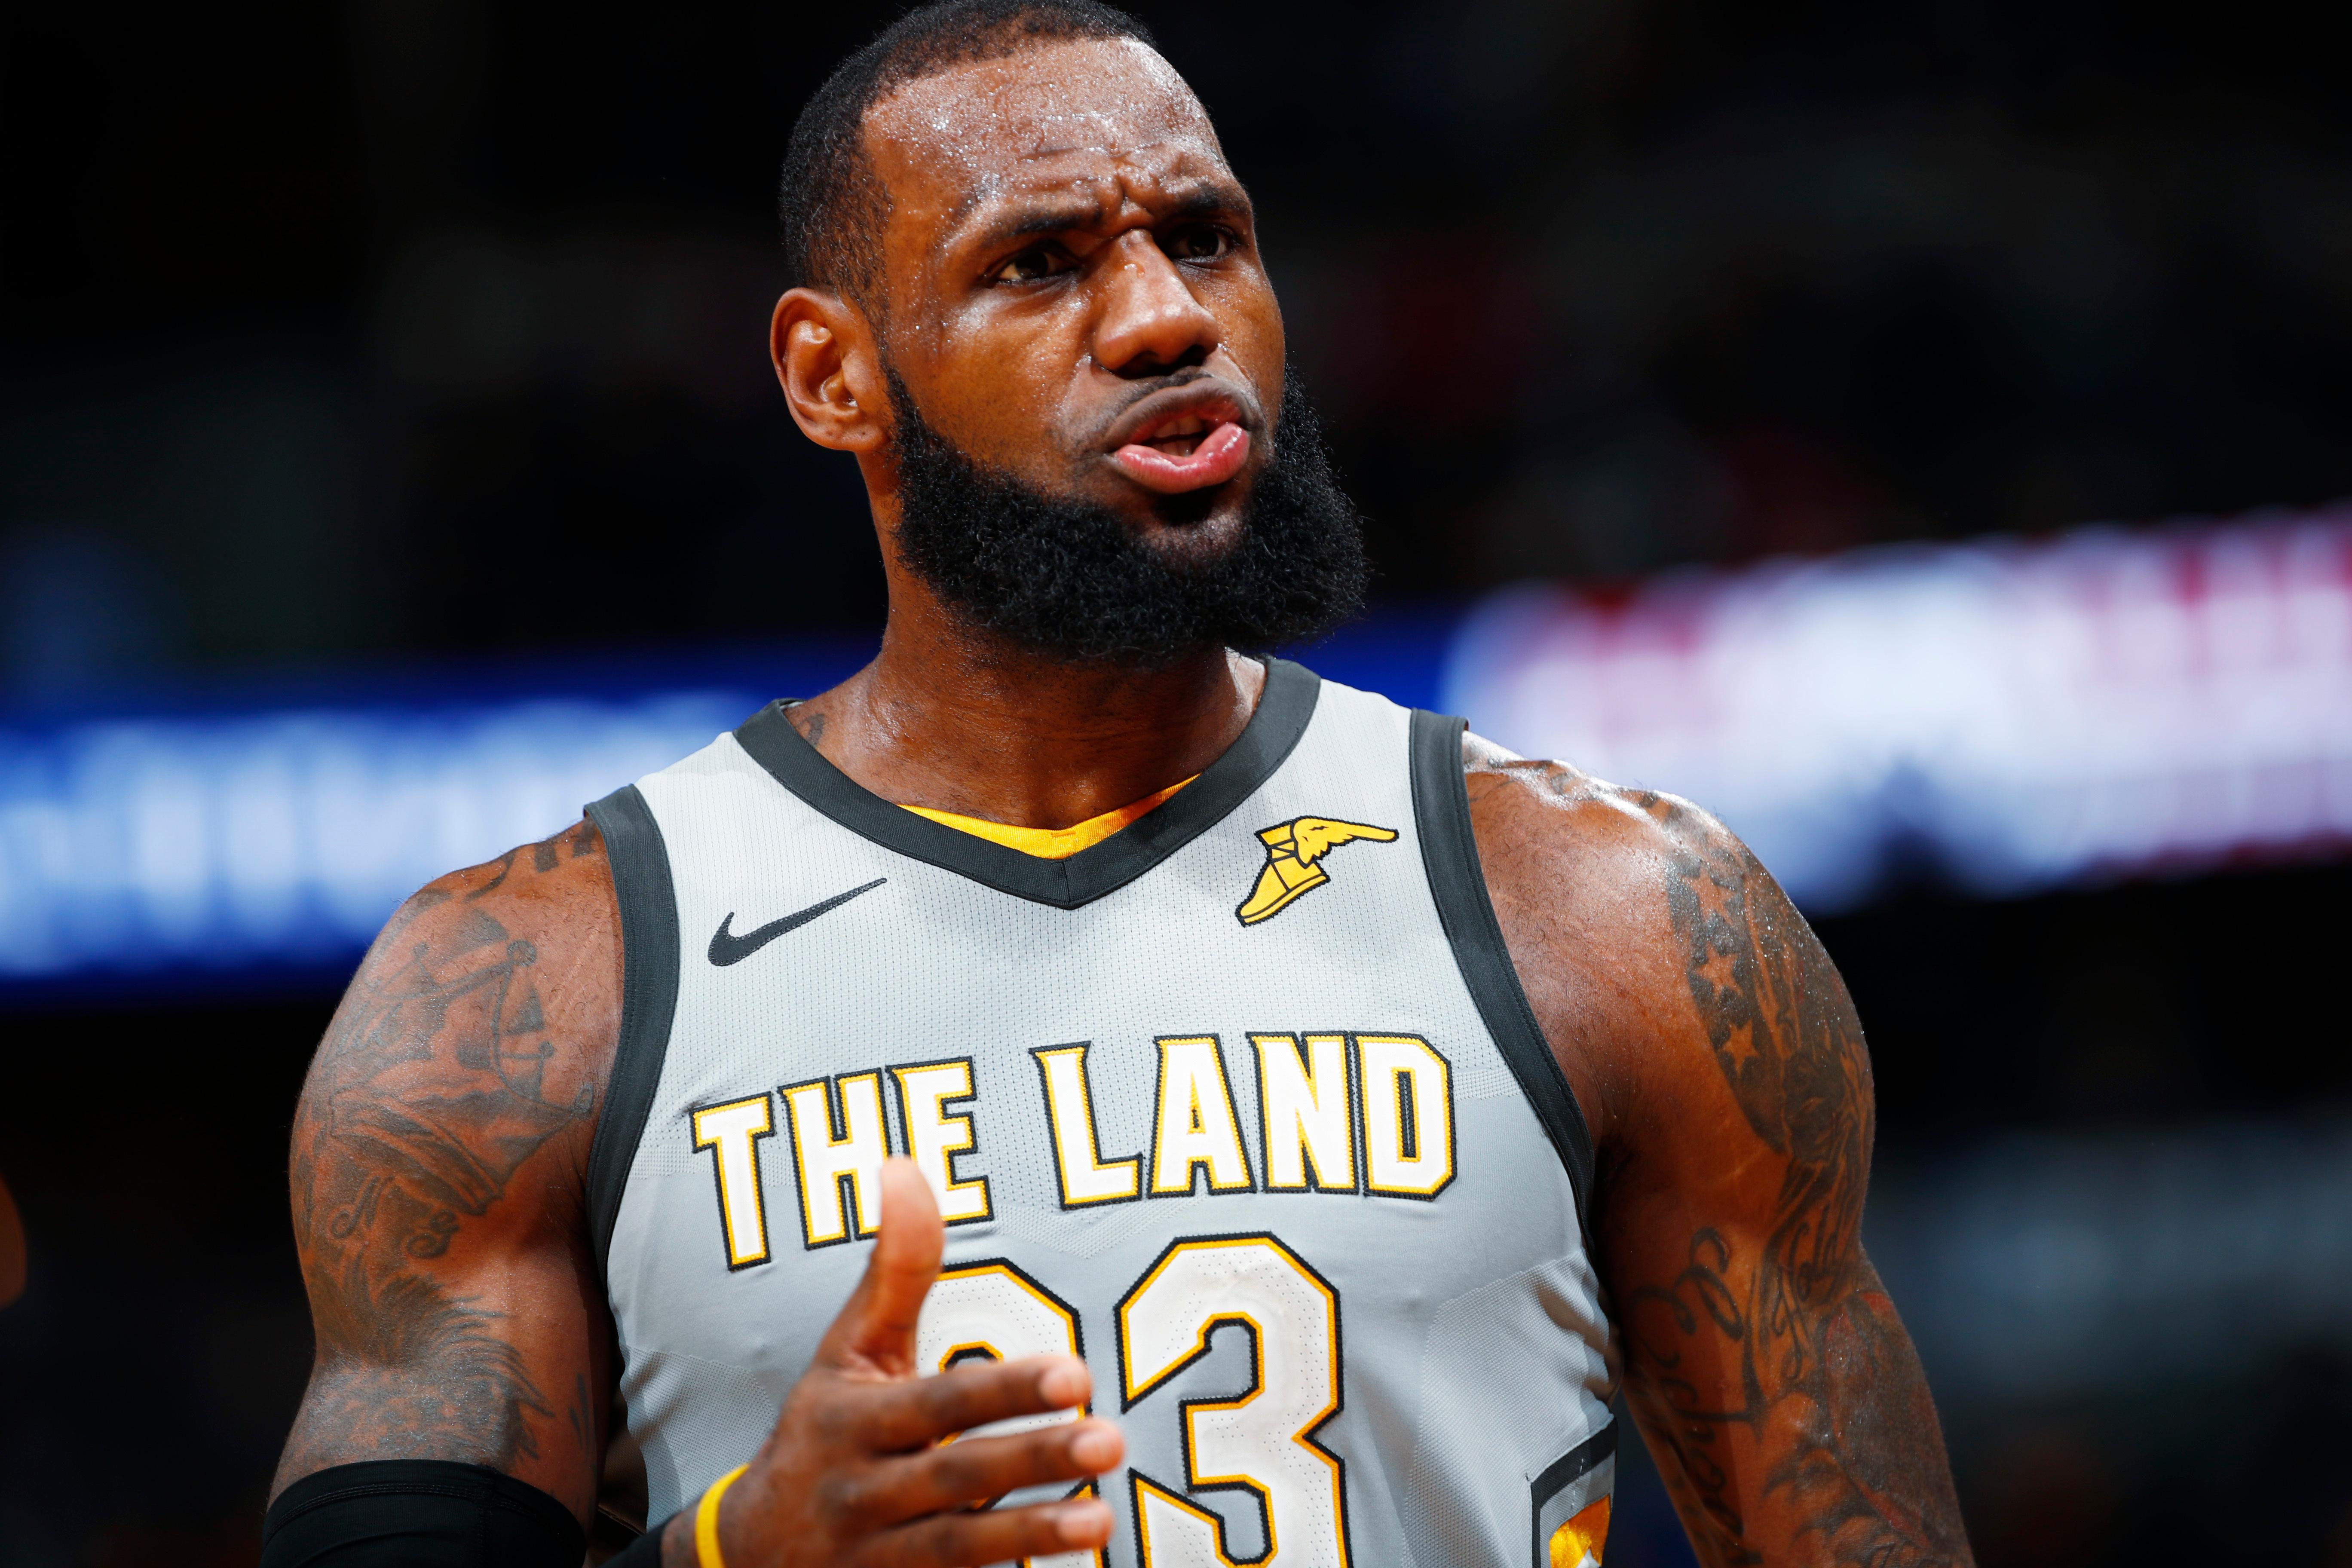 Cleveland Cavaliers forward LeBron James argues for a call against Denver Nuggets center Nikola Jokic late in the second half of an NBA basketball game Wednesday, March 7, 2018, in Denver. The Cavaliers won 113-108. (AP Photo/David Zalubowski)